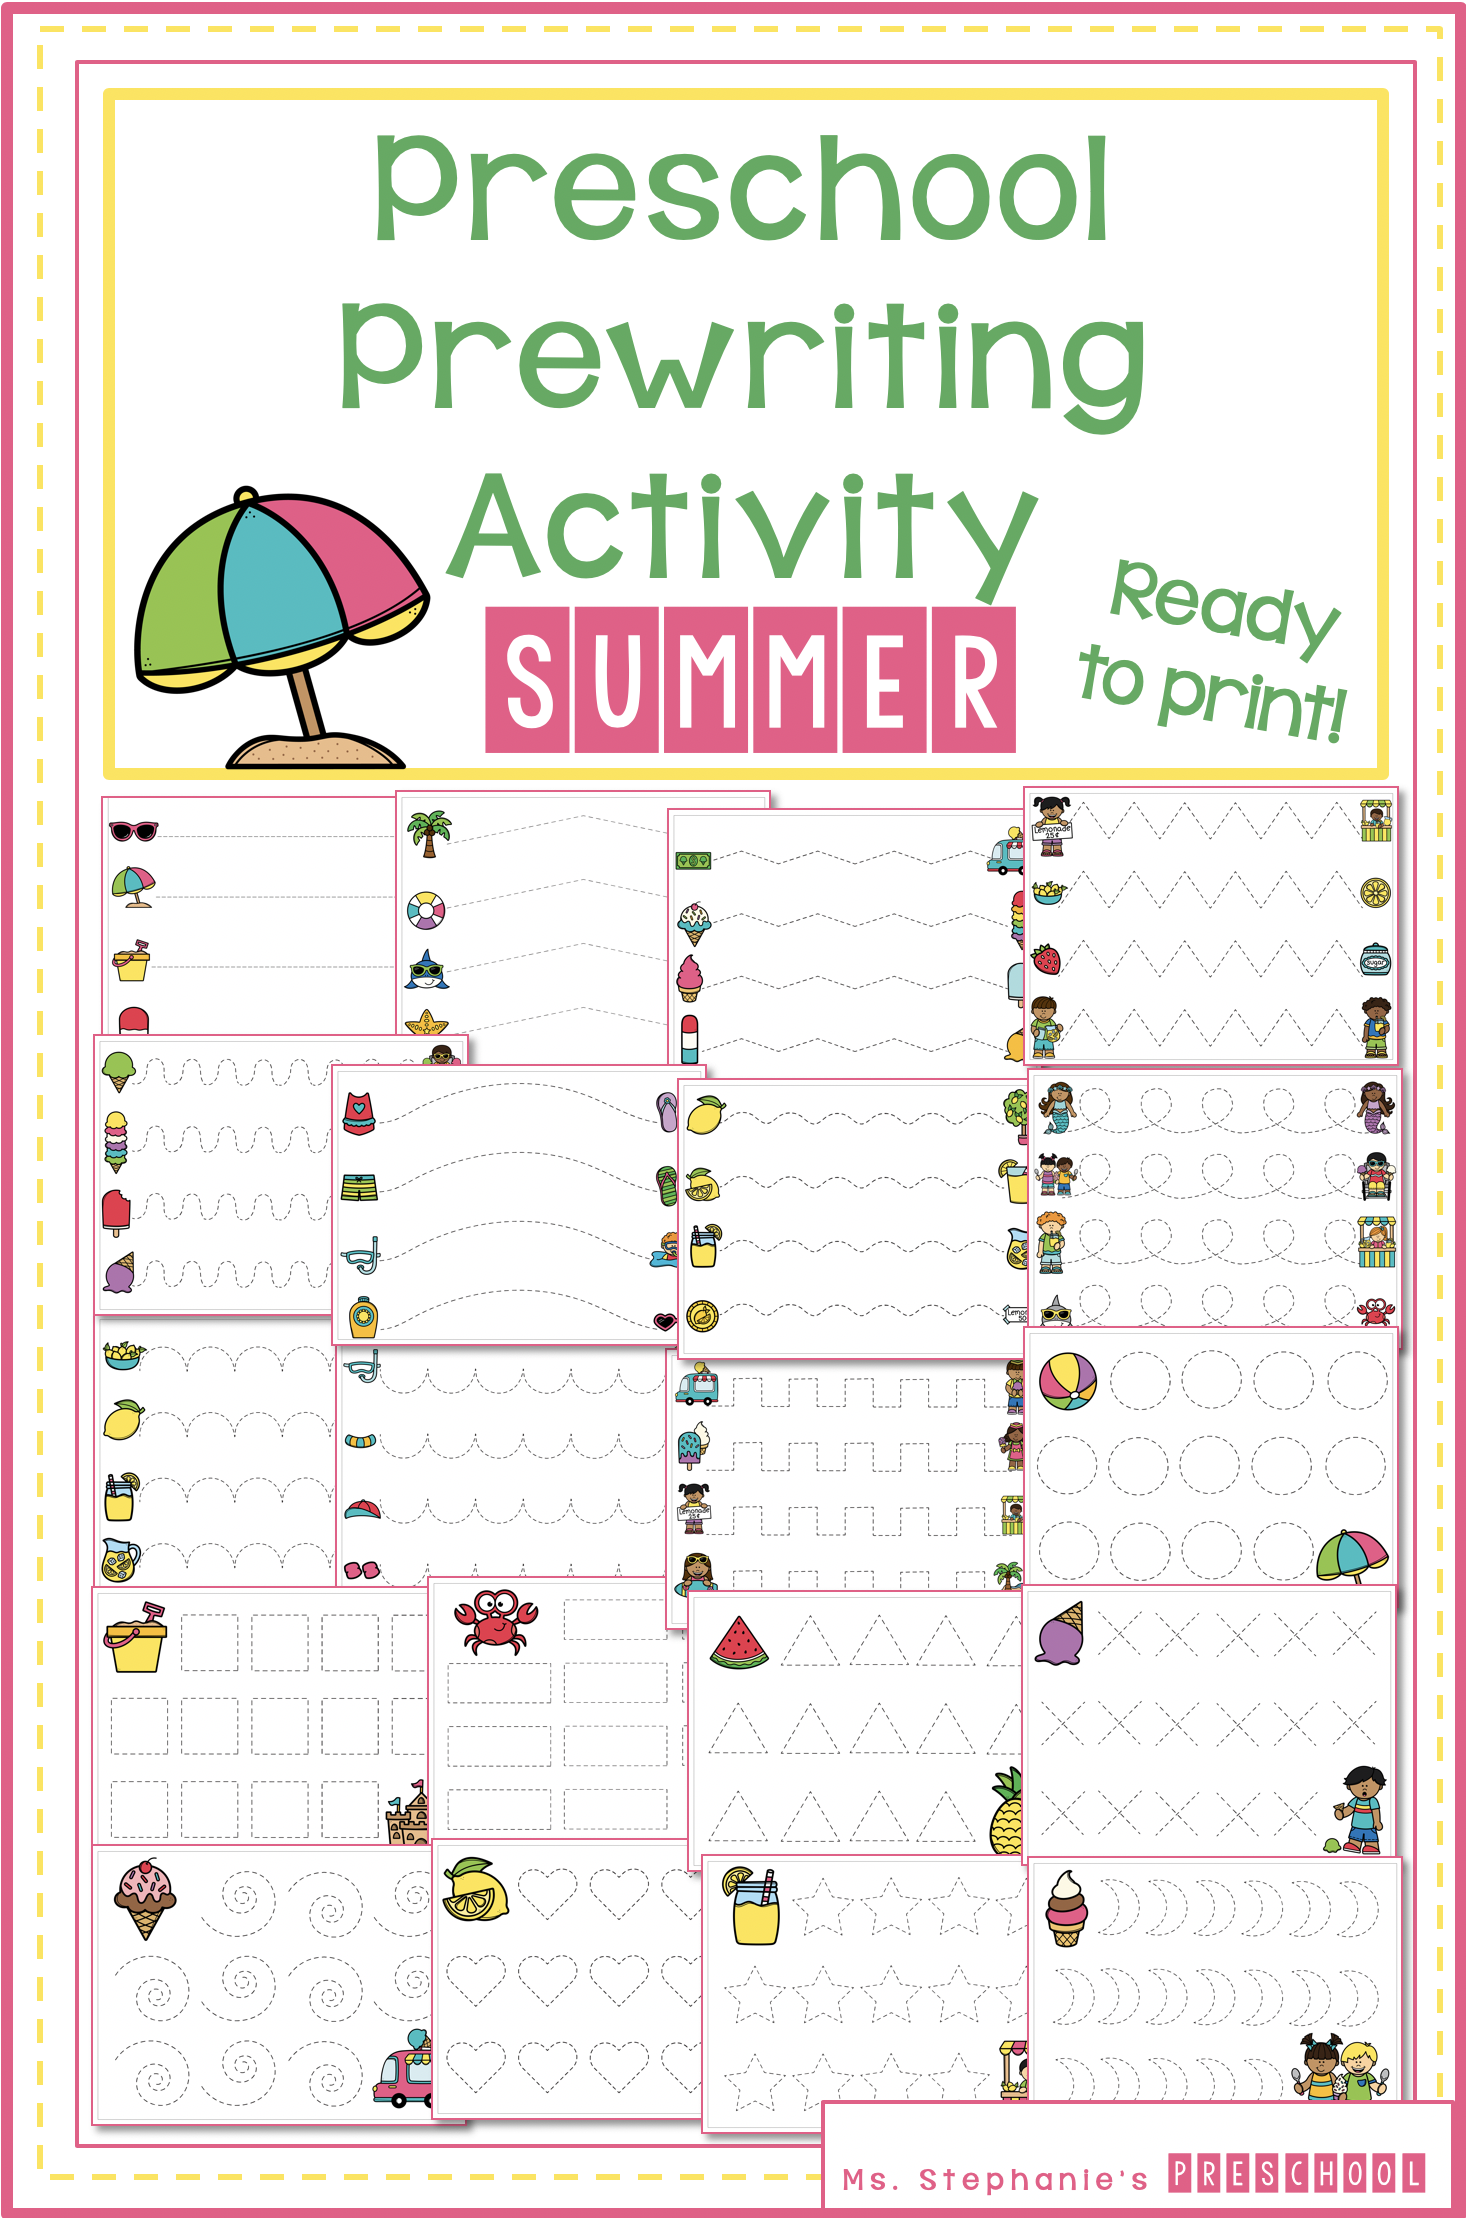 Prewriting Activity Summer Preschool Tracing Worksheets In